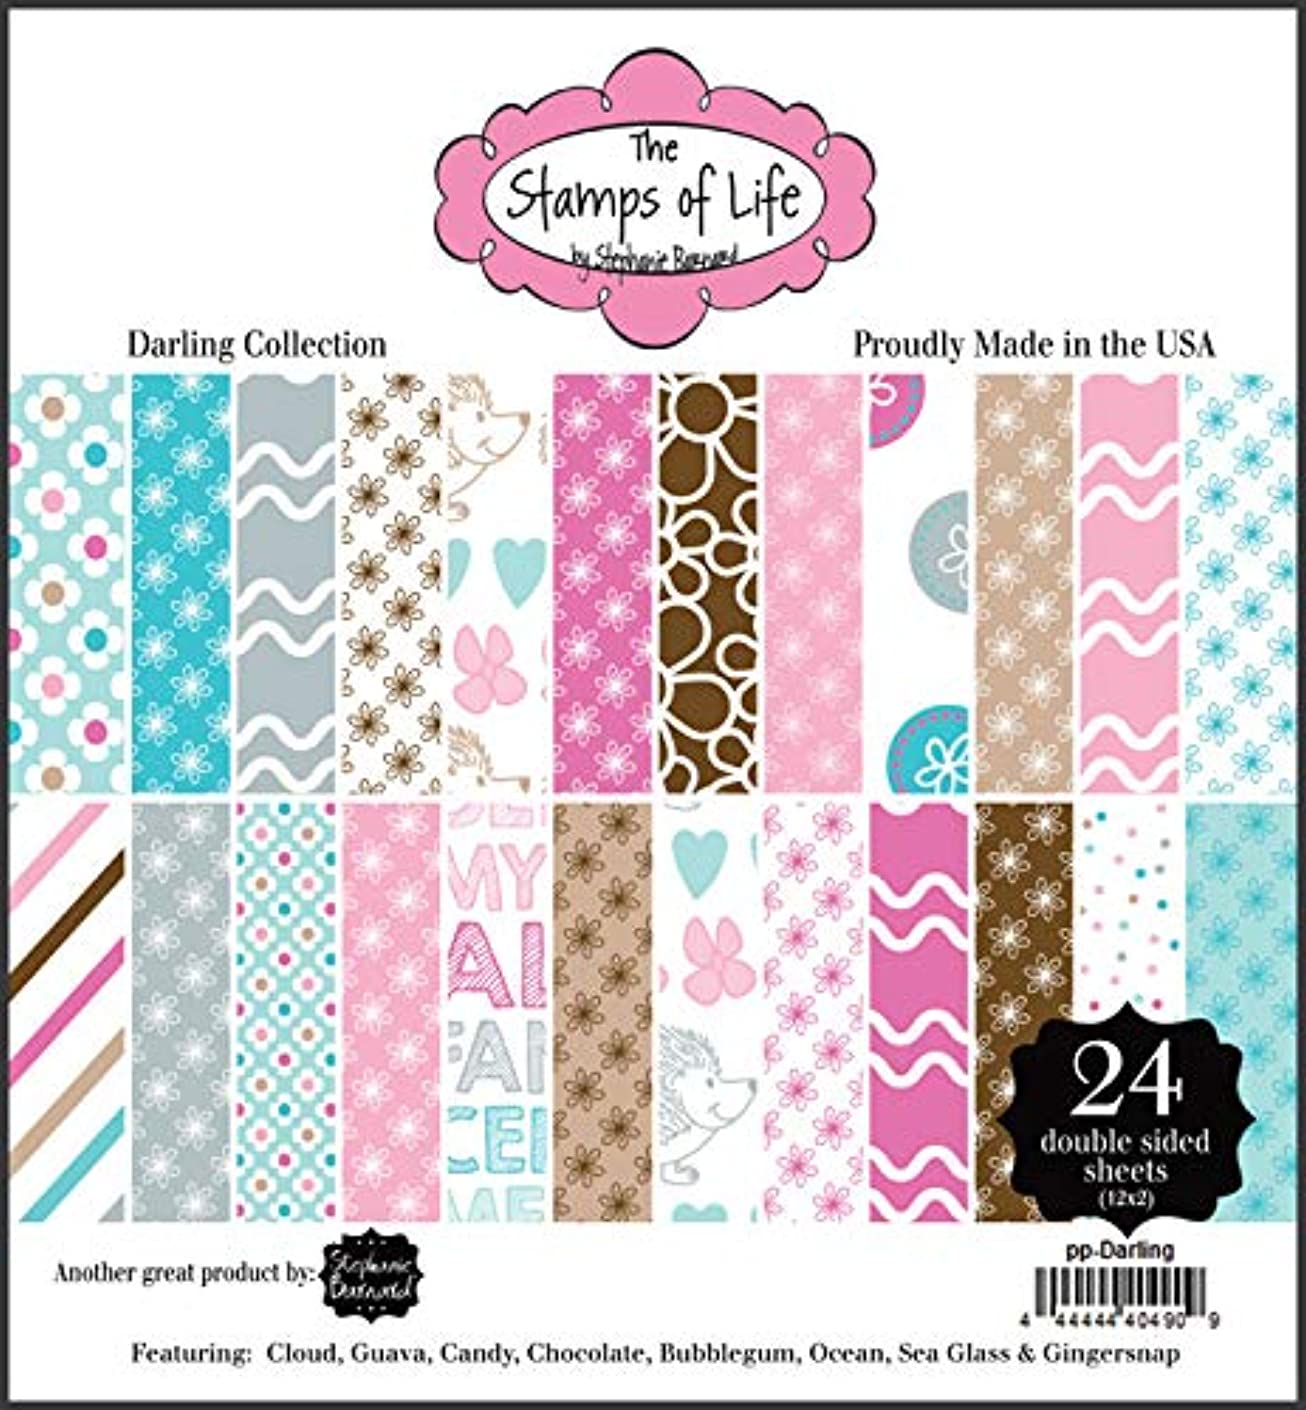 Darling Patterned Paper Pad for Card-Making and Scrapbooking by The Stamps of Life - 24 Sheets 6